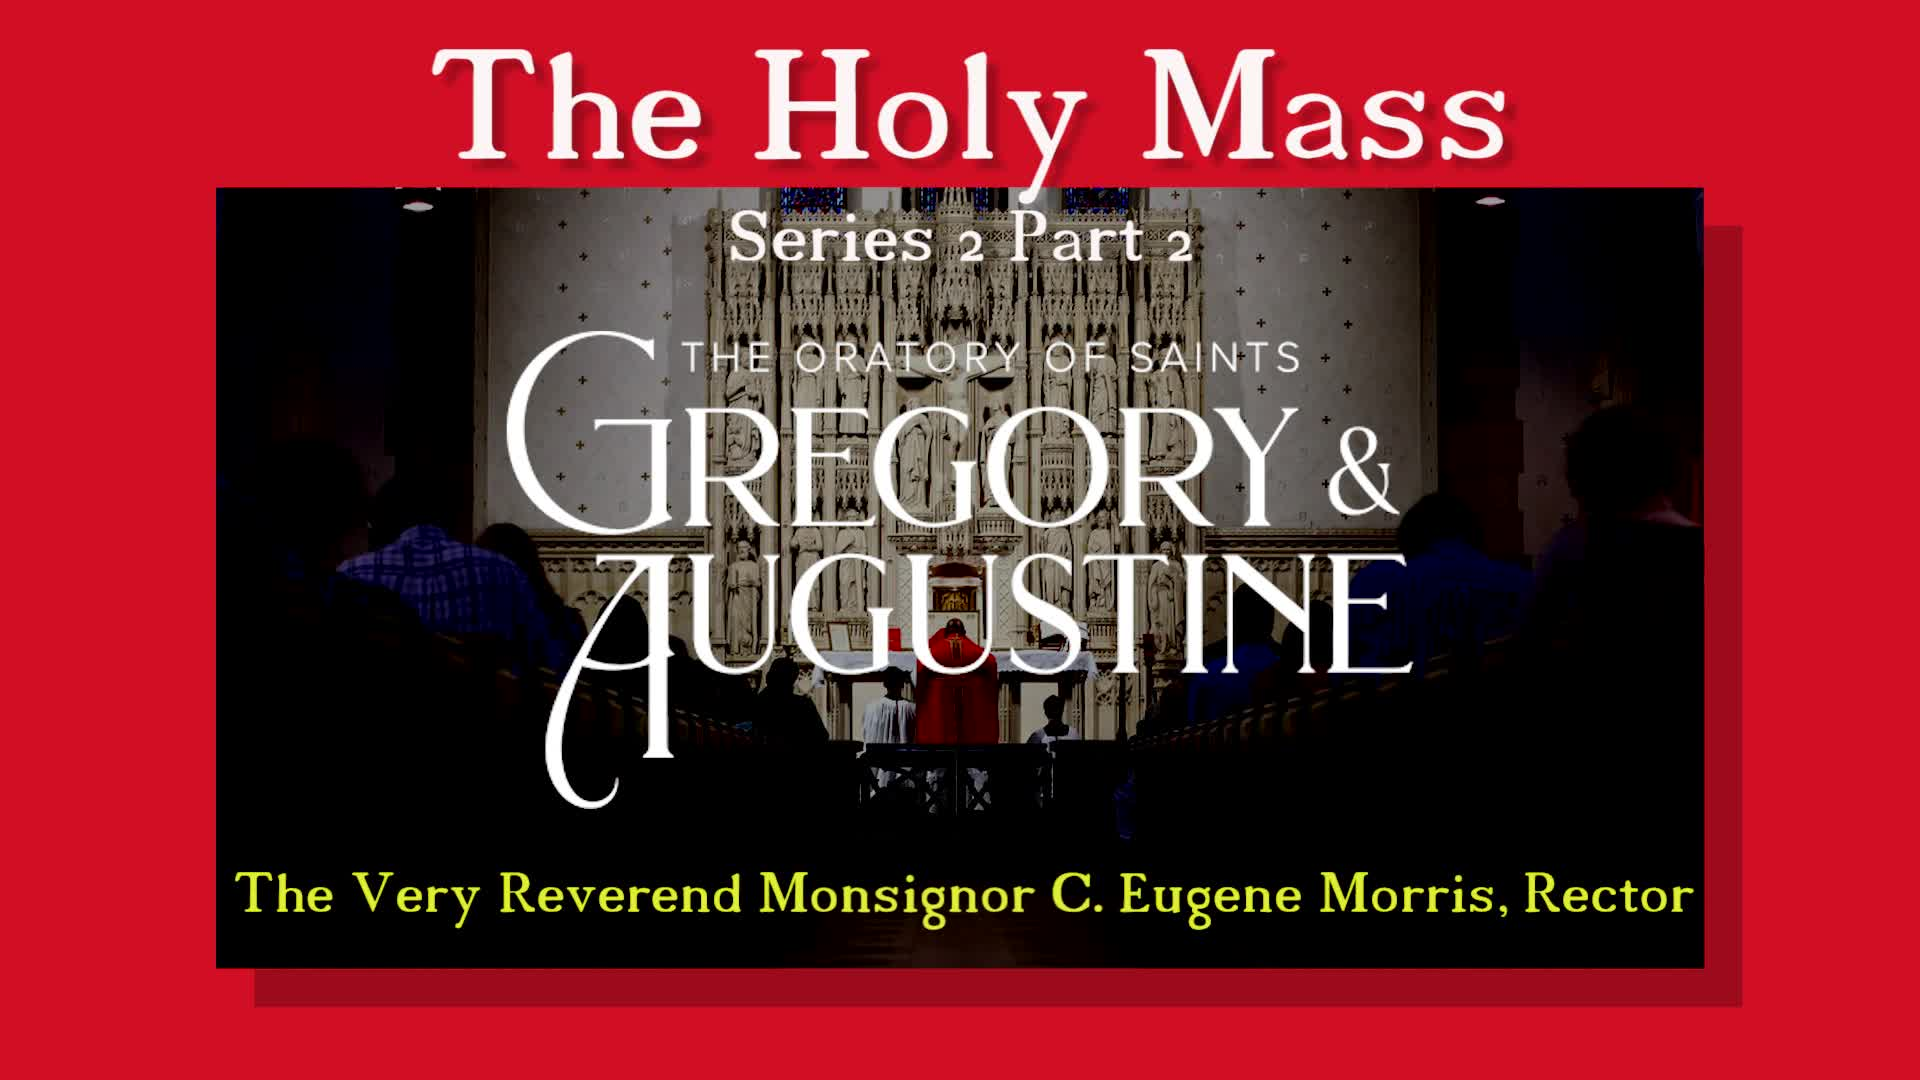 The Holy Mass Series 2 - Part 2